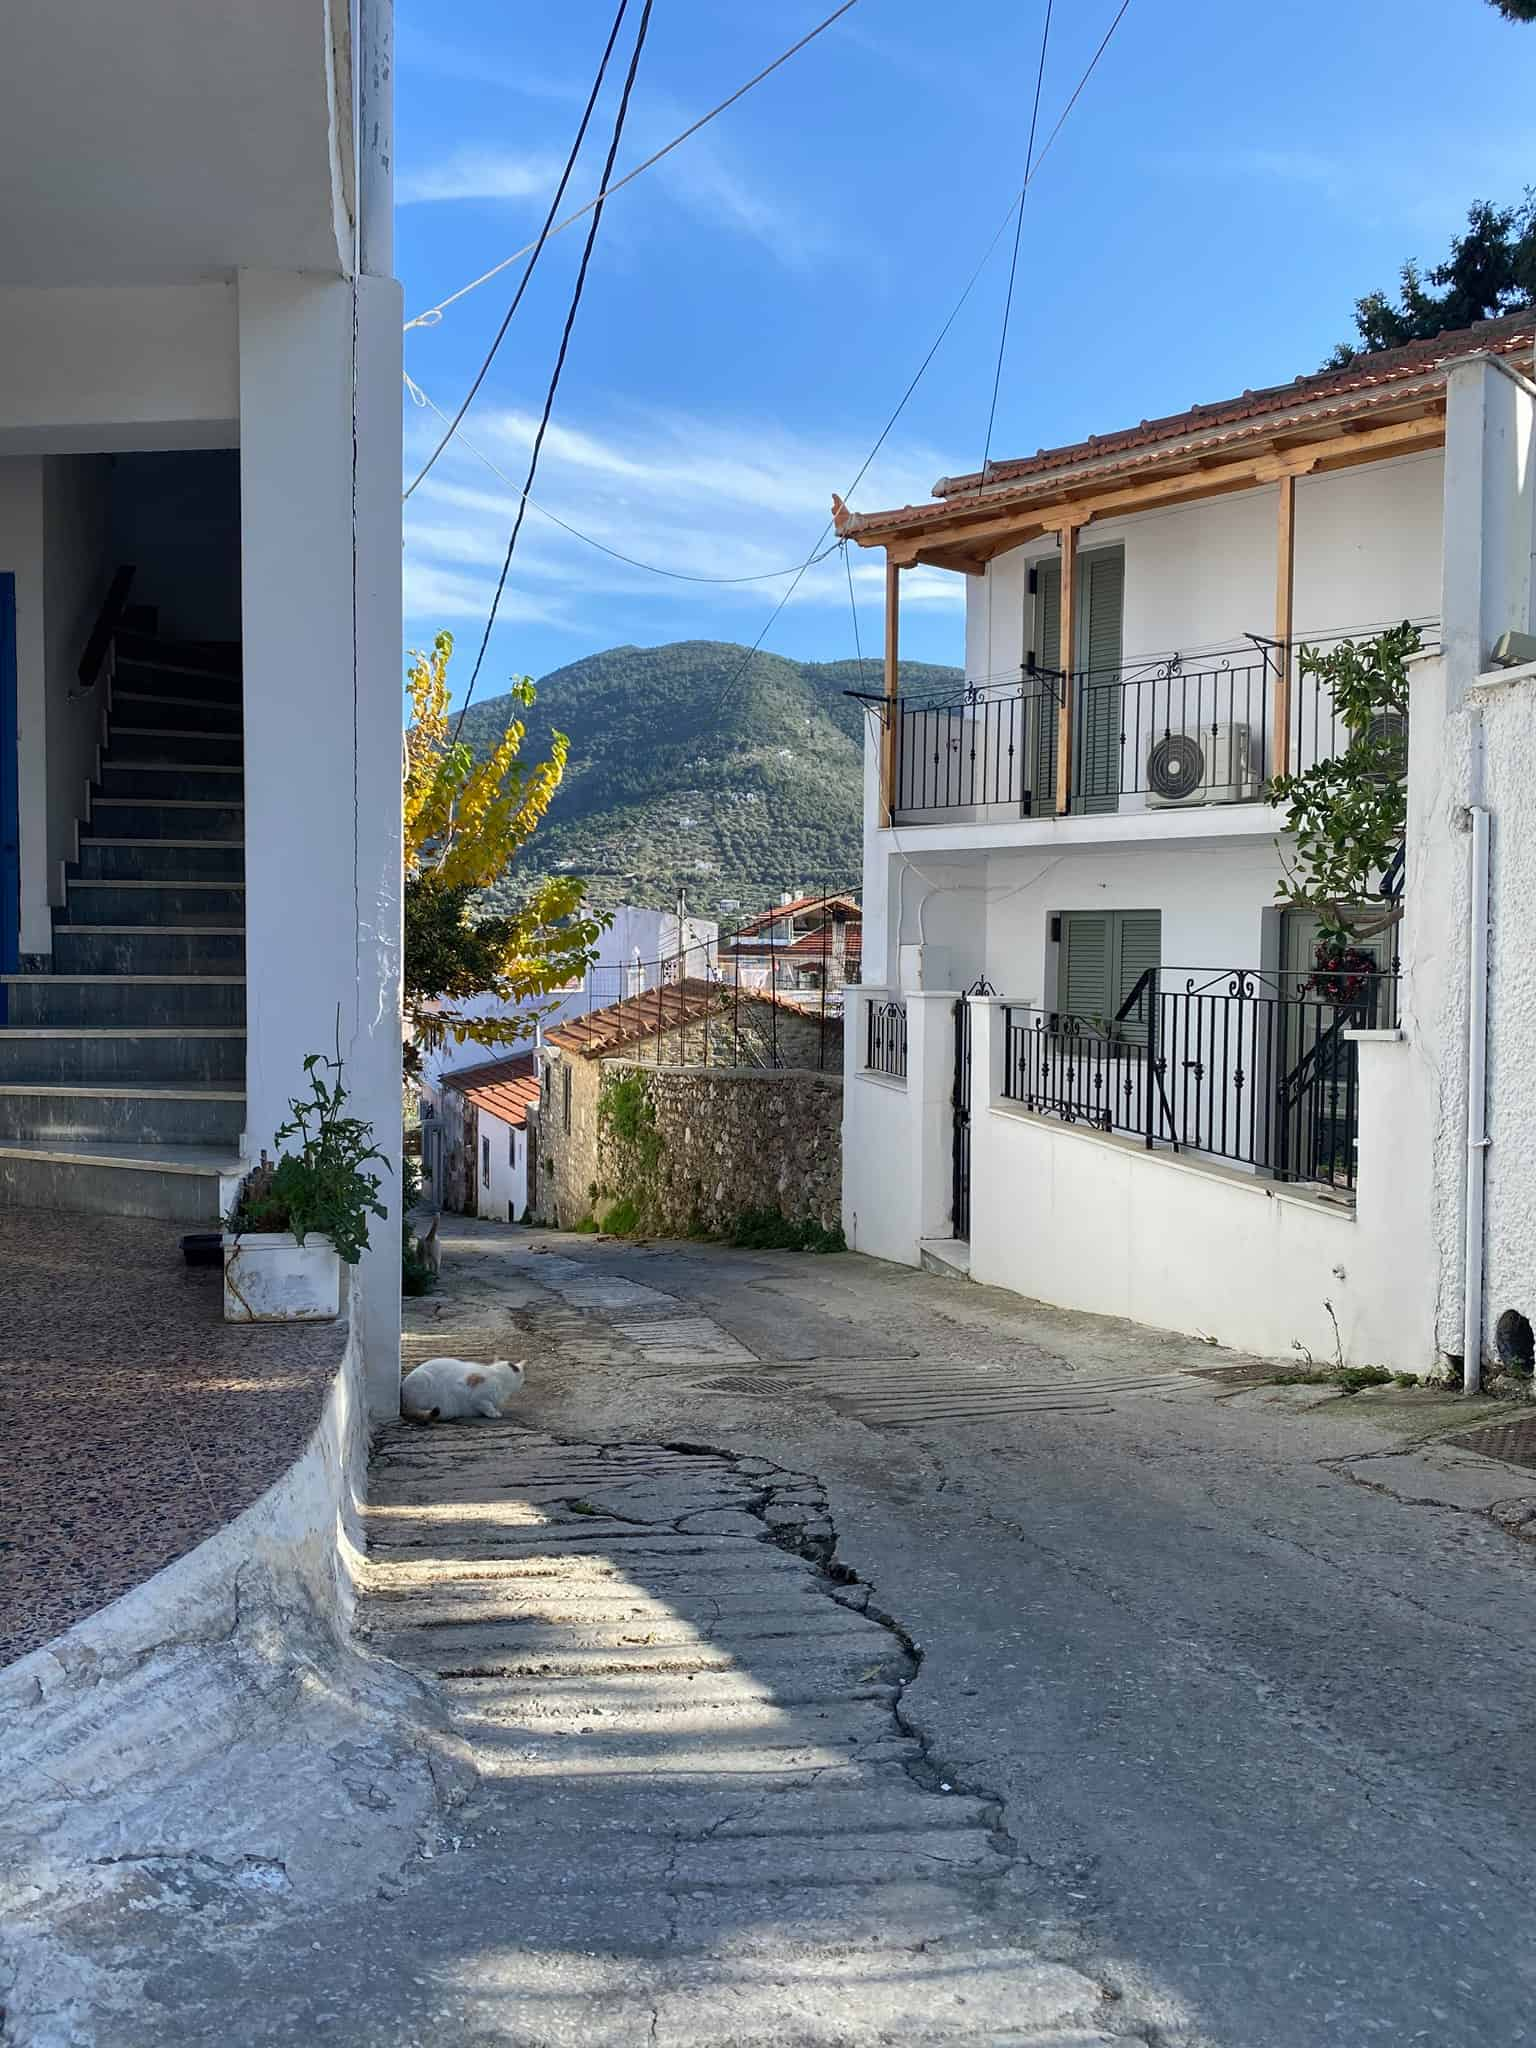 The little streets of Skopelos town